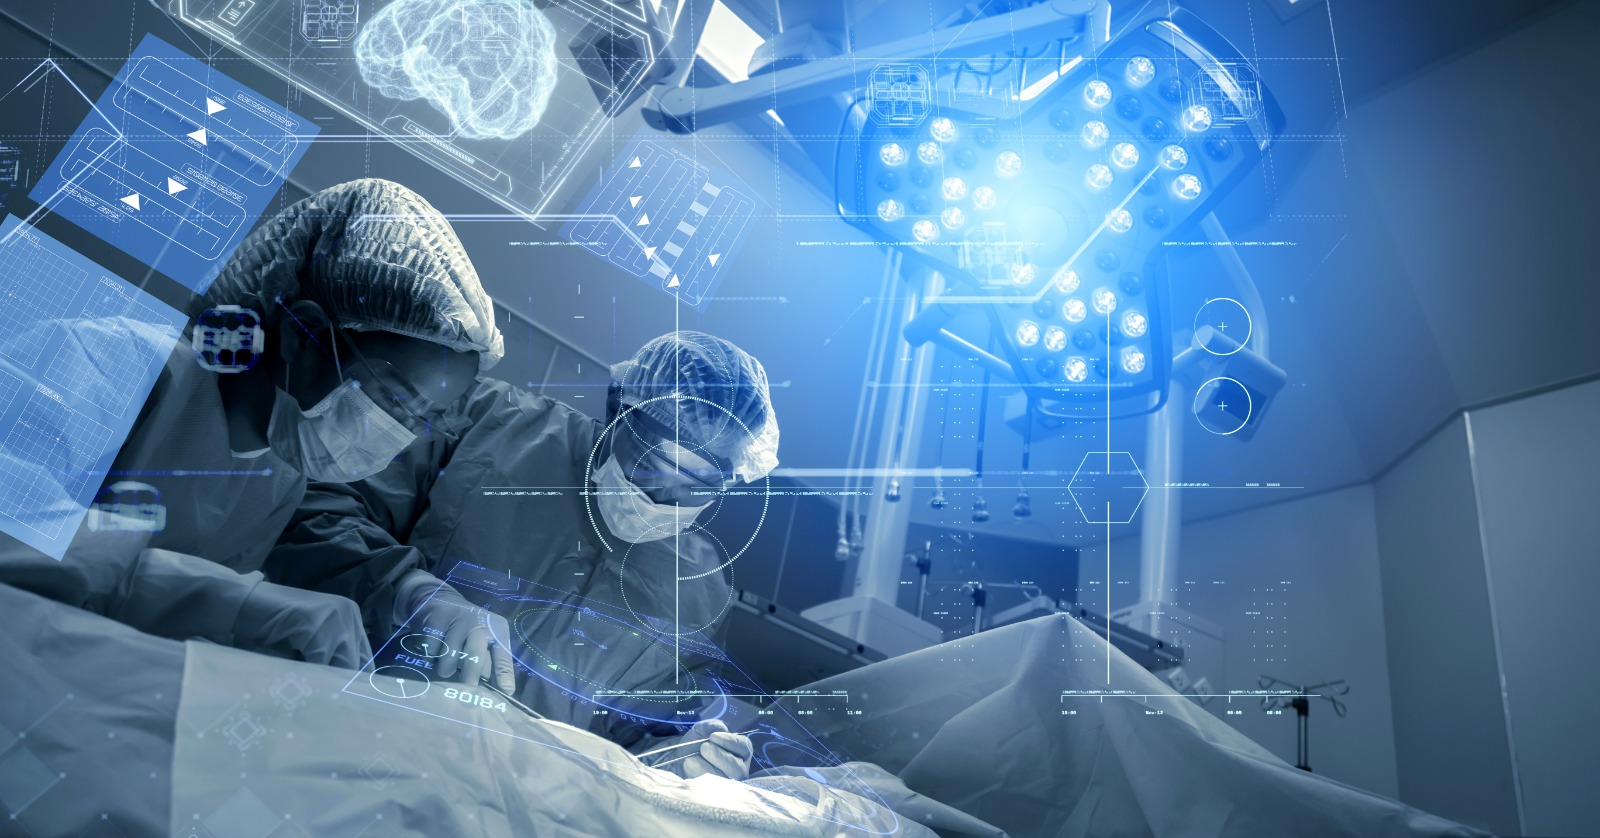 Robotics for healthcare: what can robots bring to medicine?